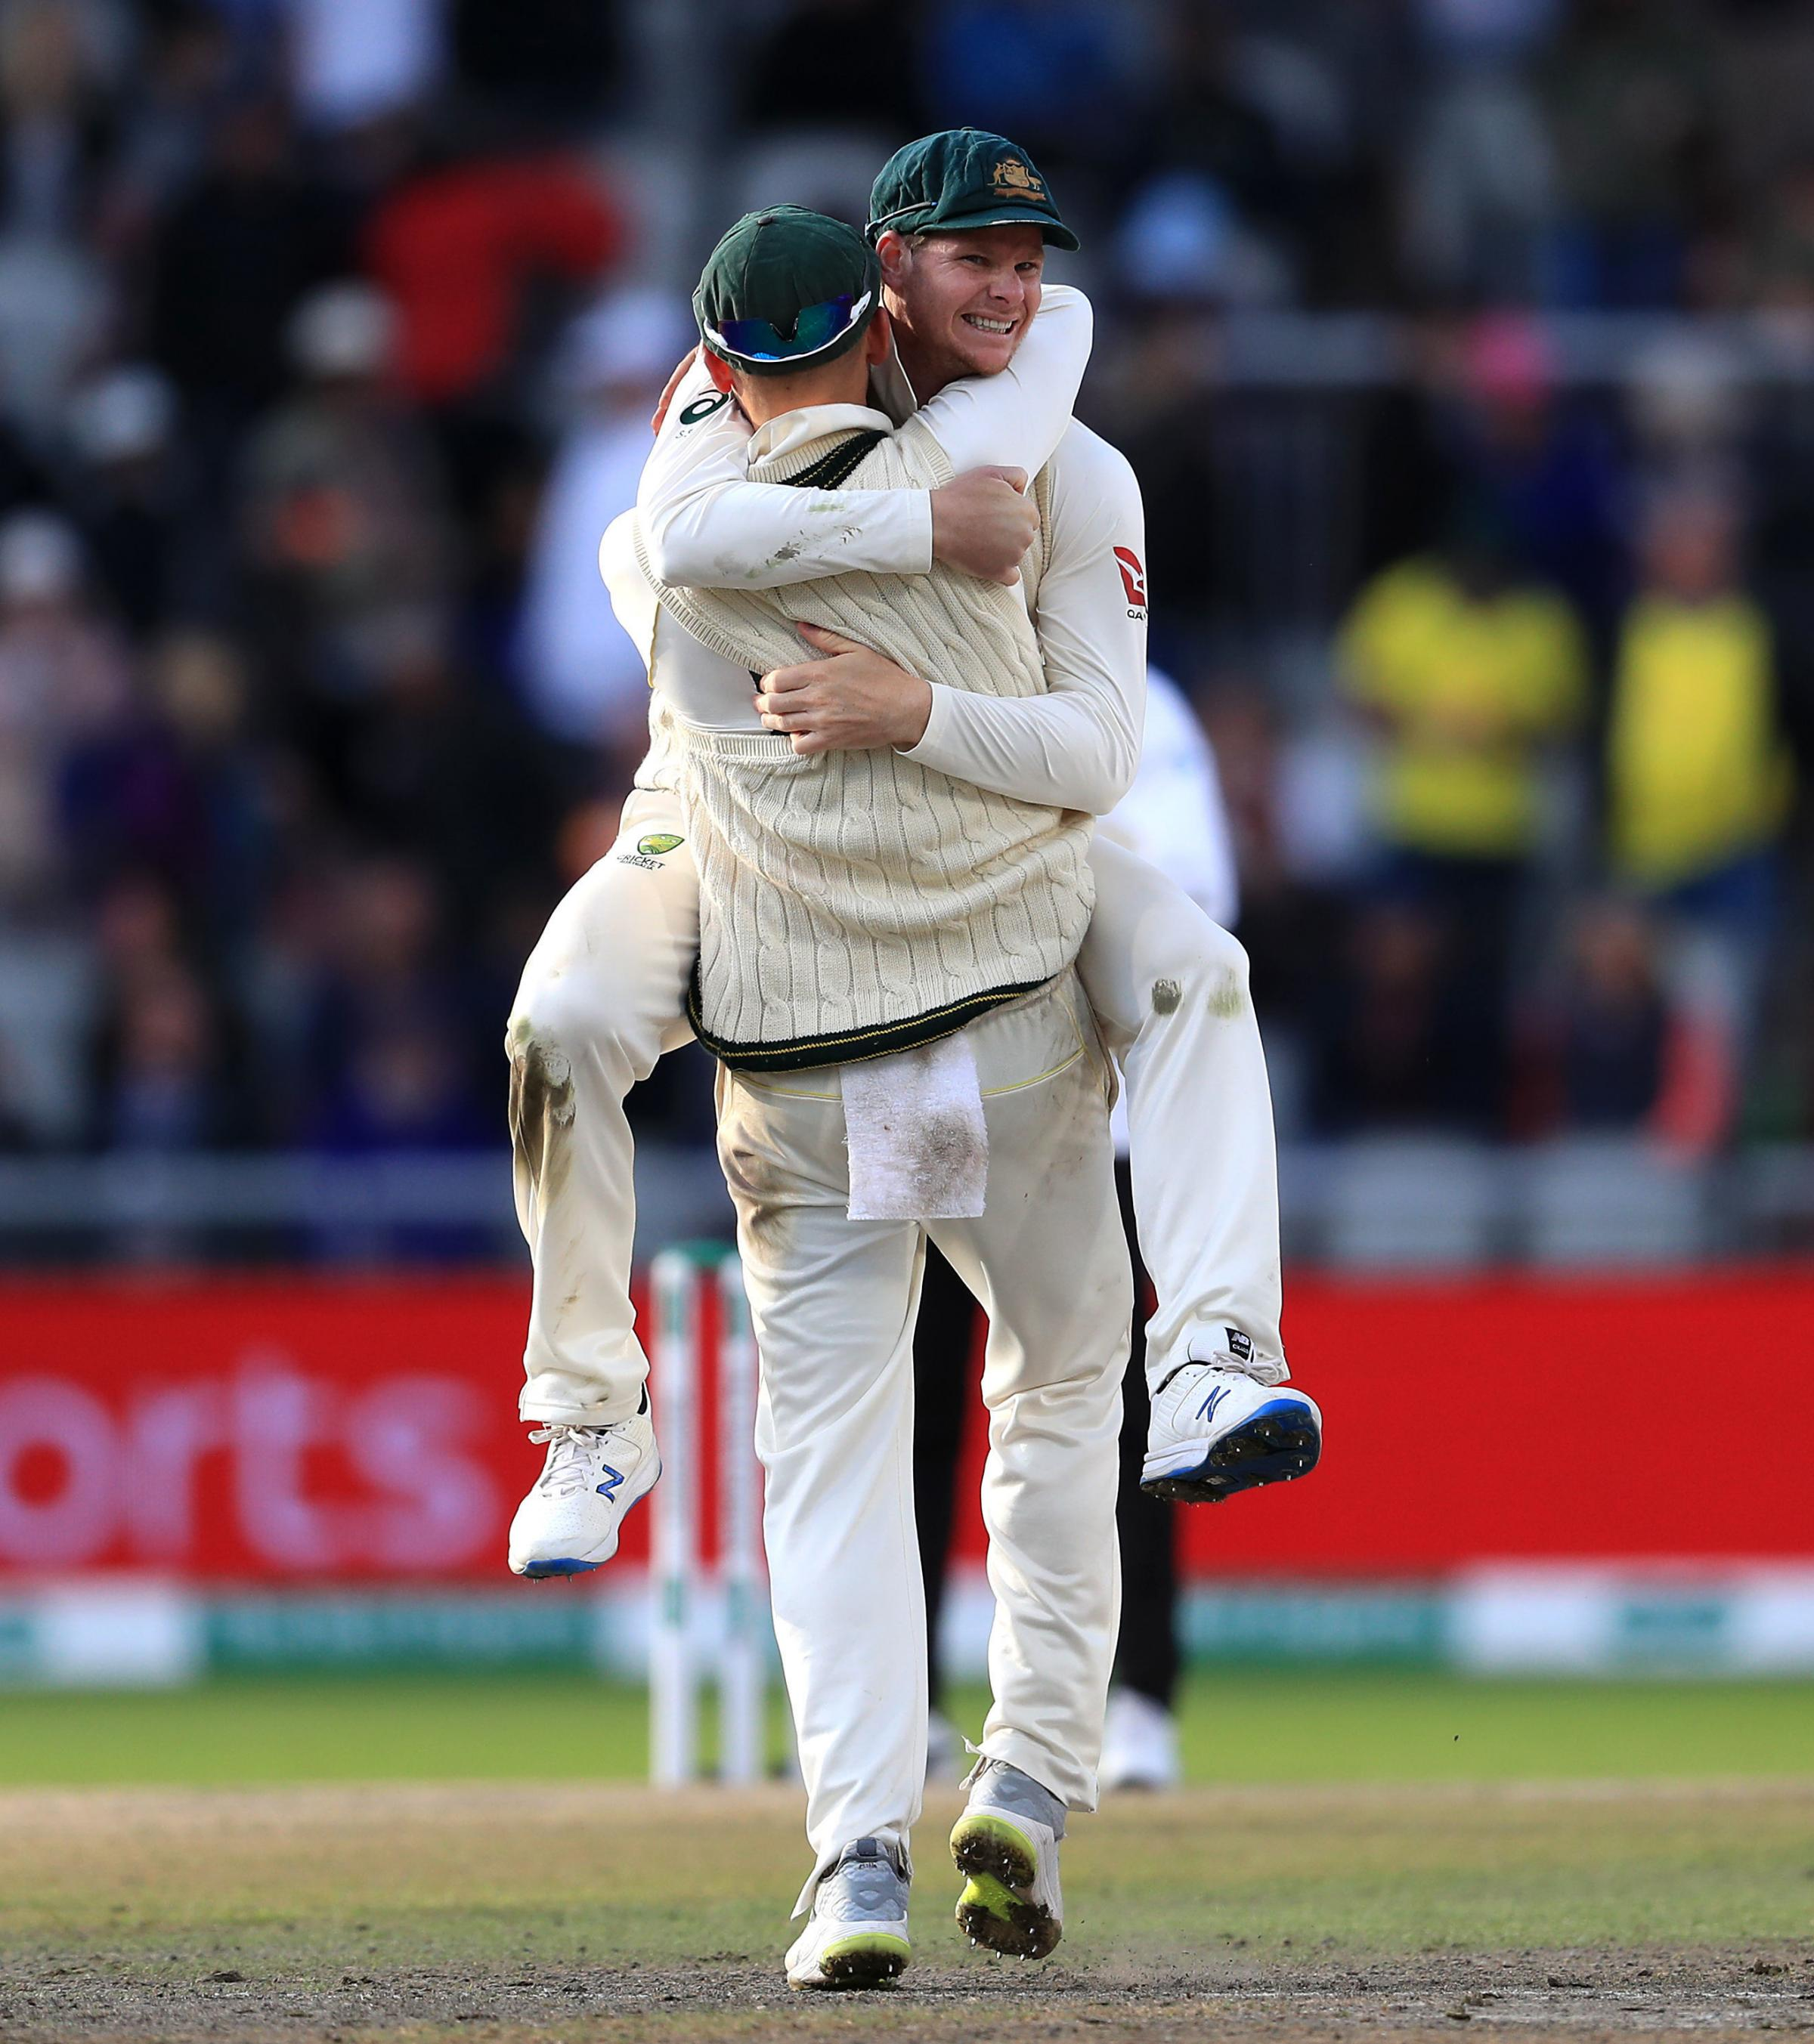 Steve Smith 'mocks Jack Leach' during Australia's Ashes celebrations